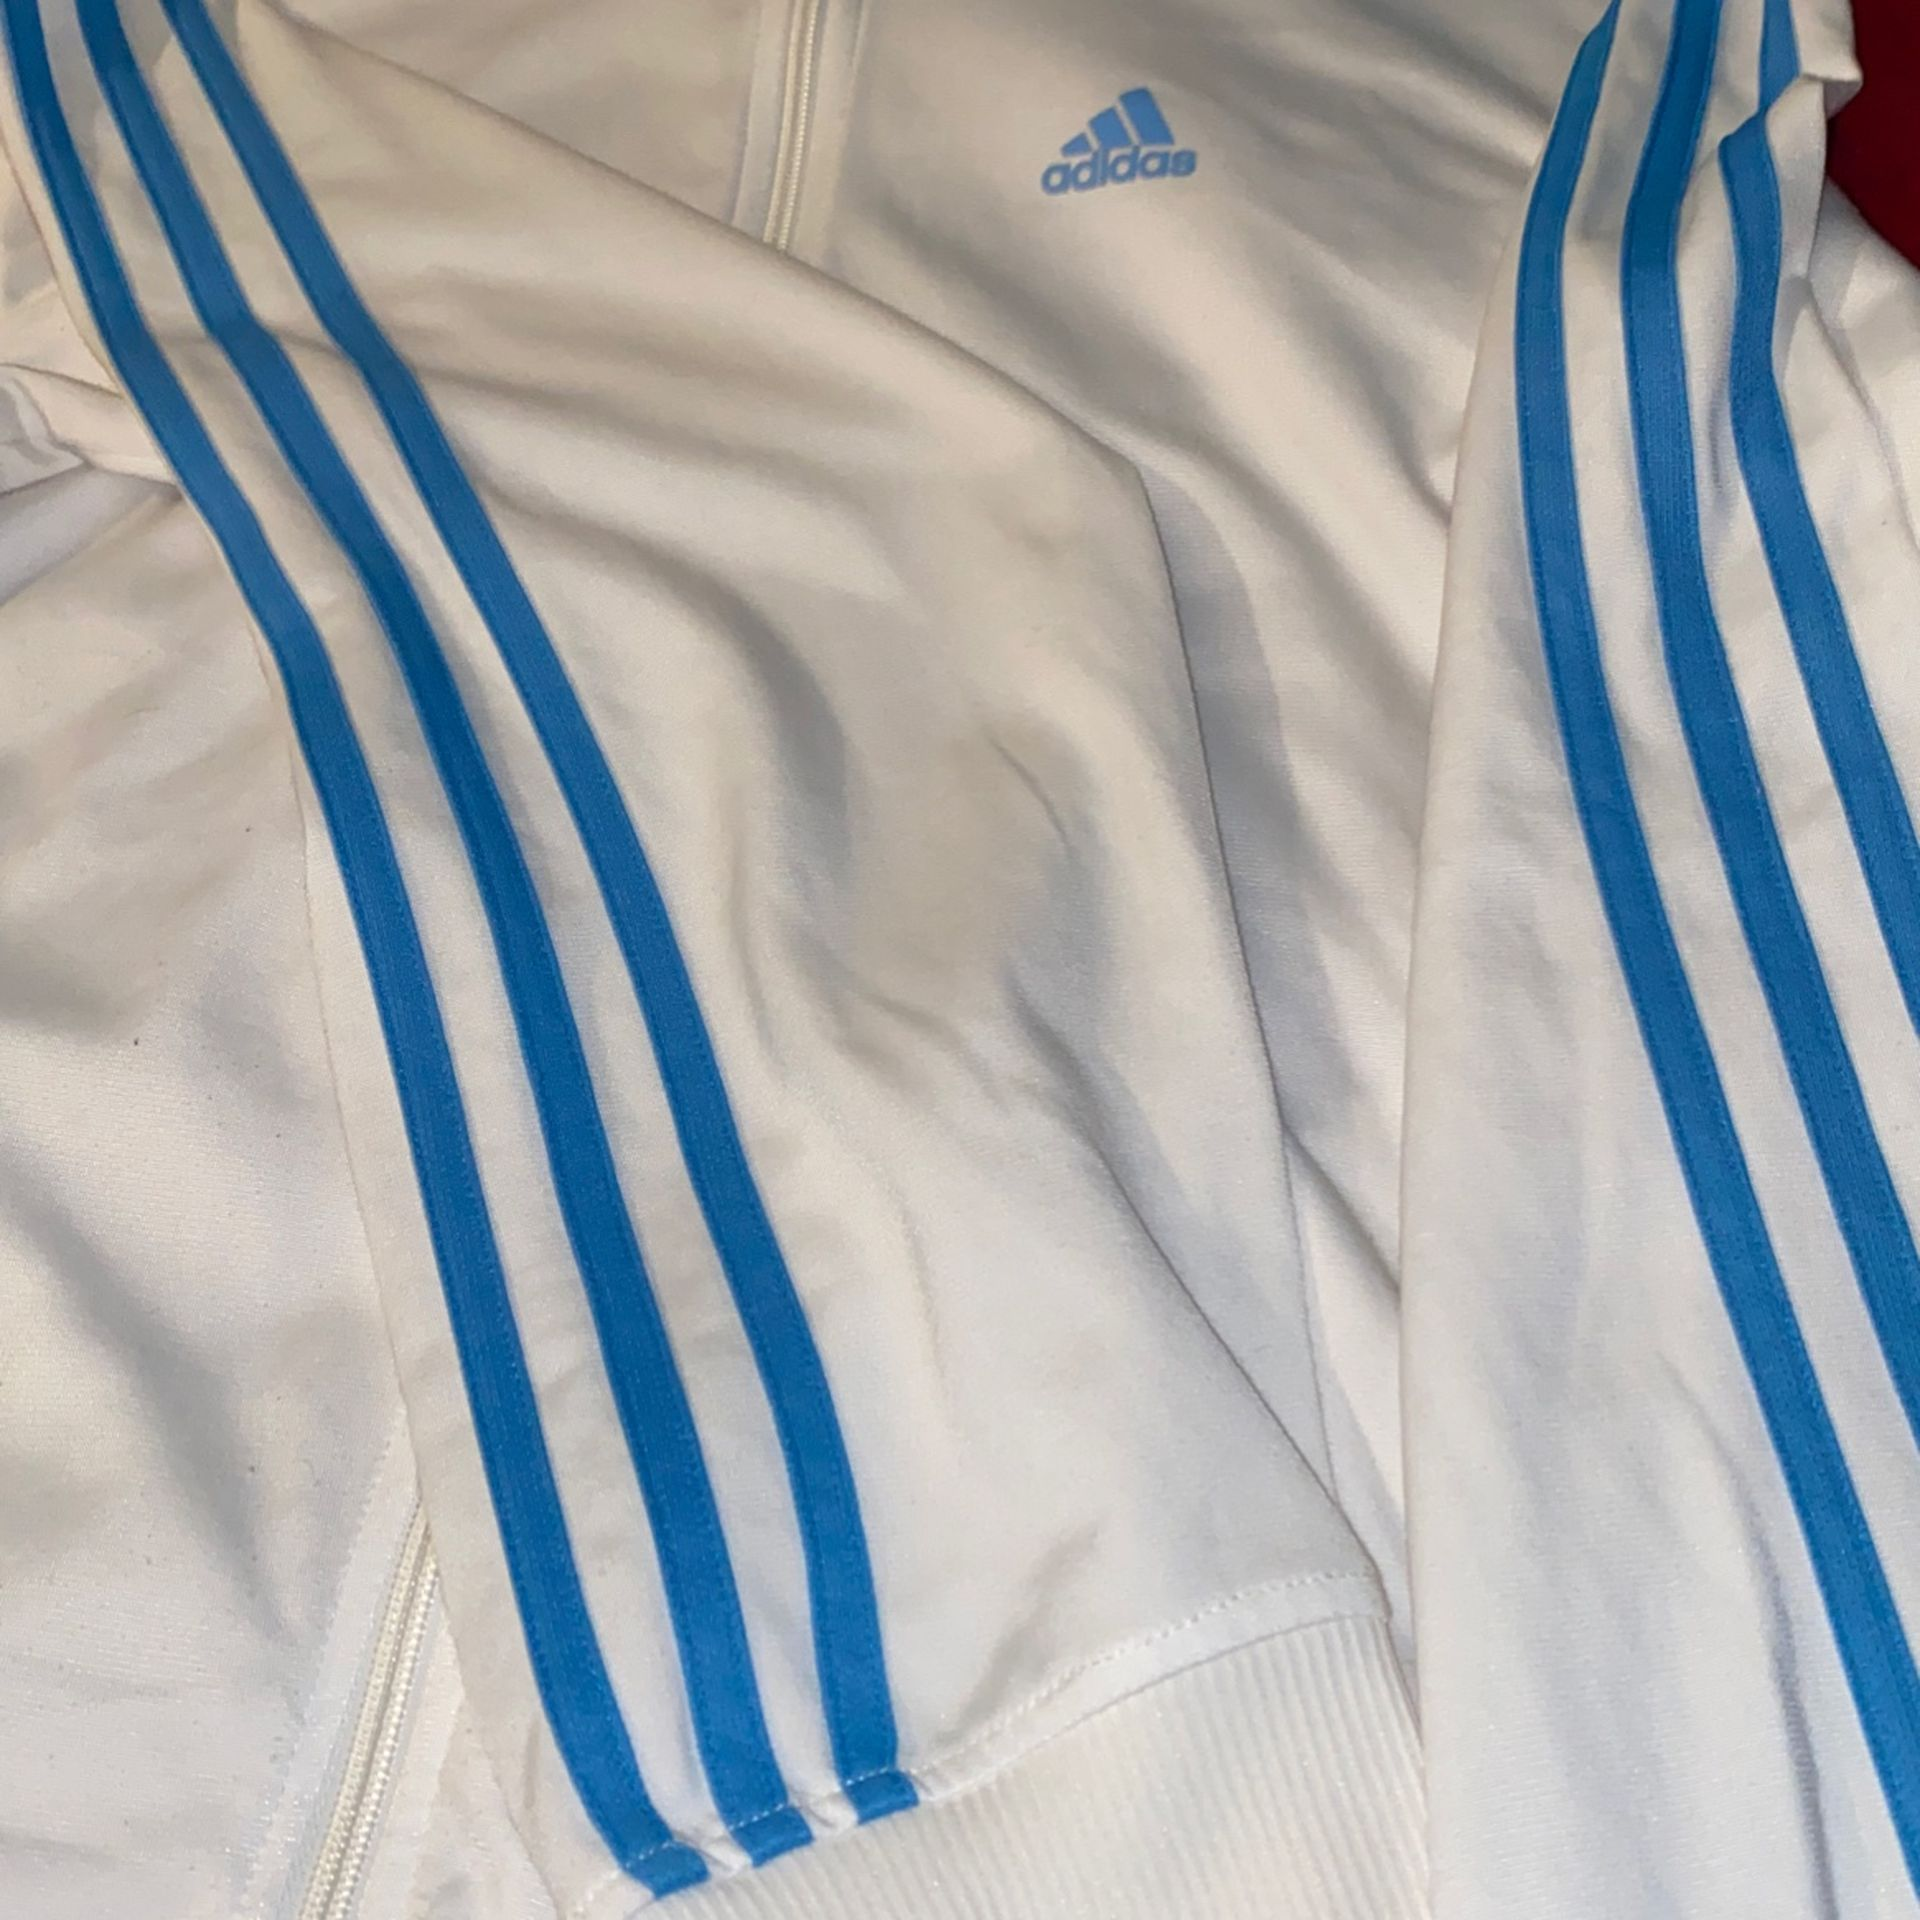 Climate Wire/Blue Adidas Track Jacket